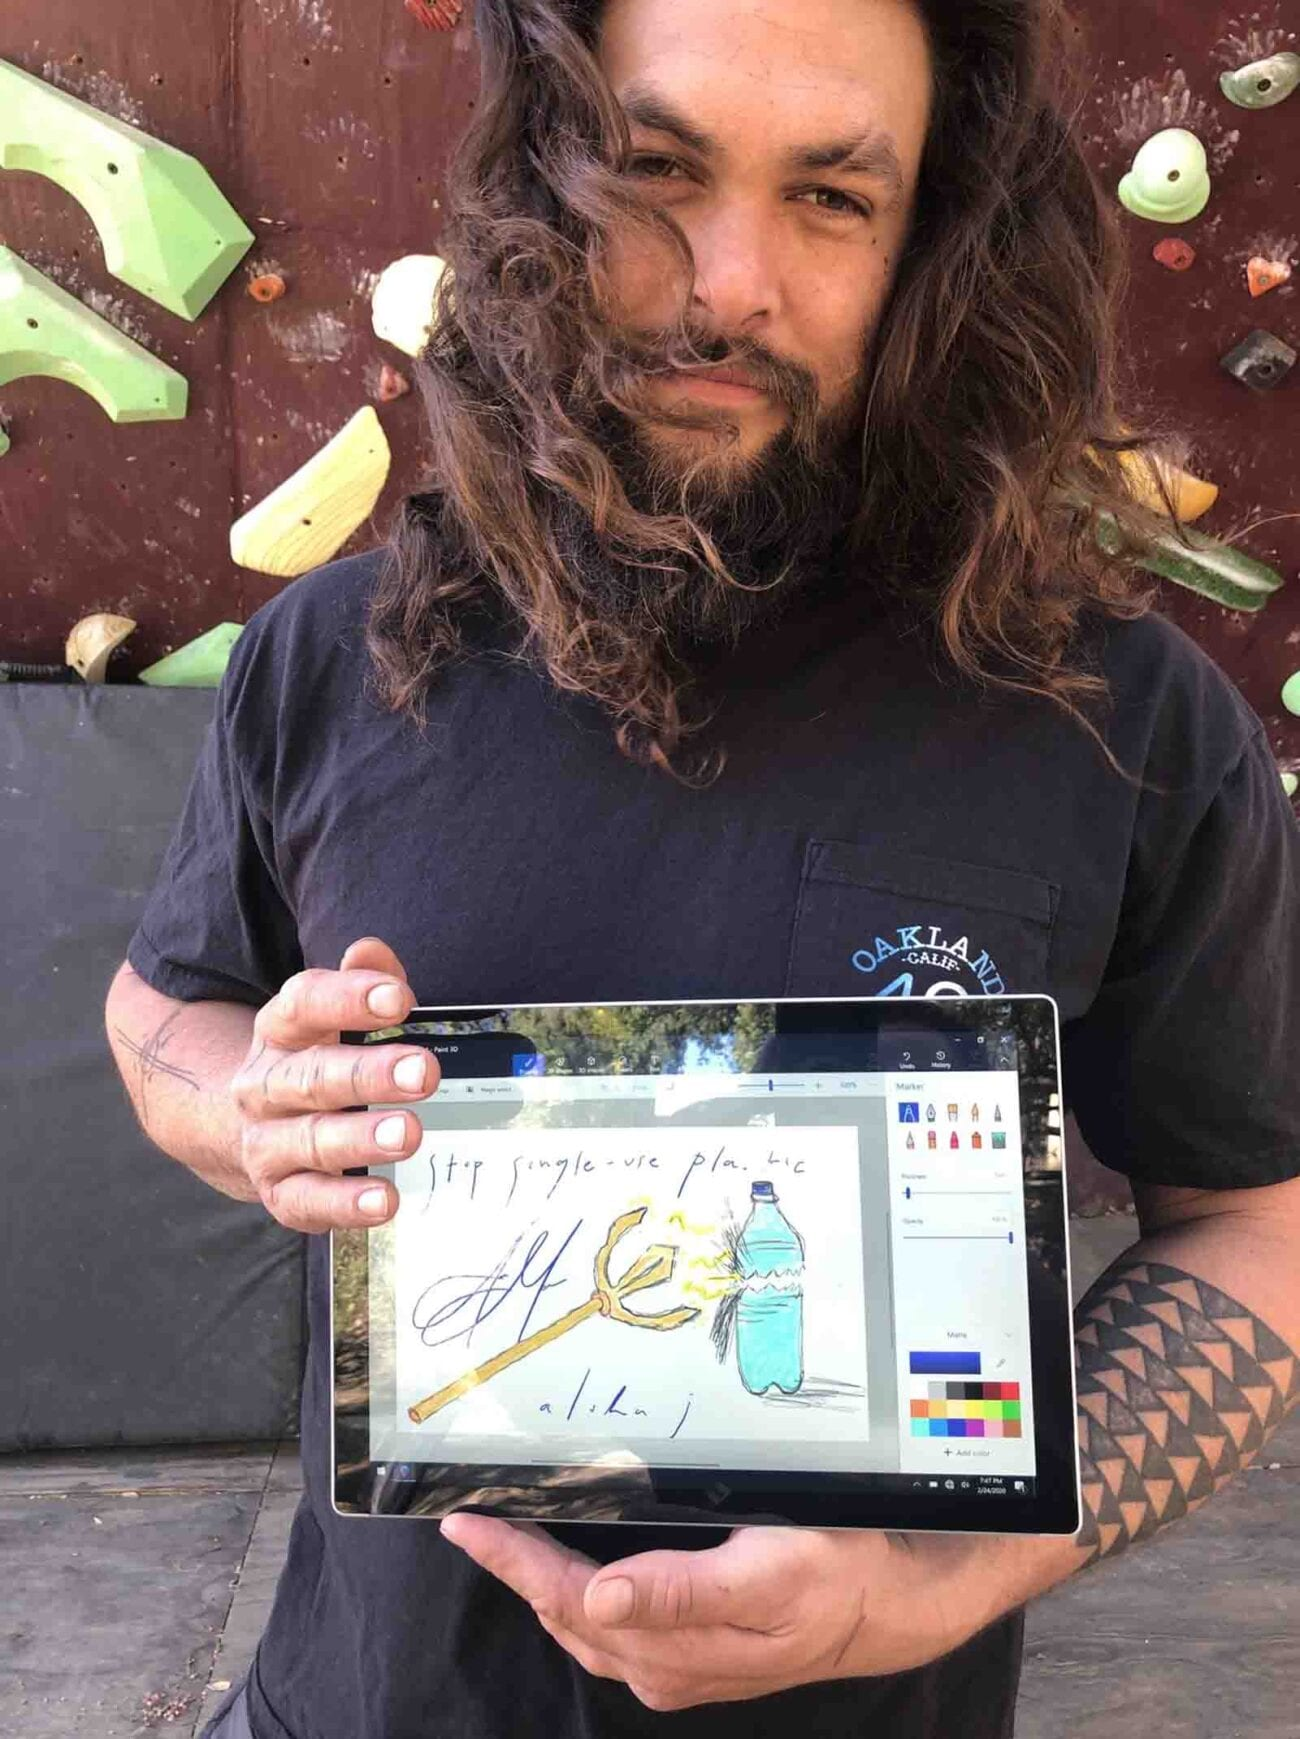 Want a drawing done by Jason Mamoa himself? Bid on this charity auction which will benefit climate change and reforestation organizations.